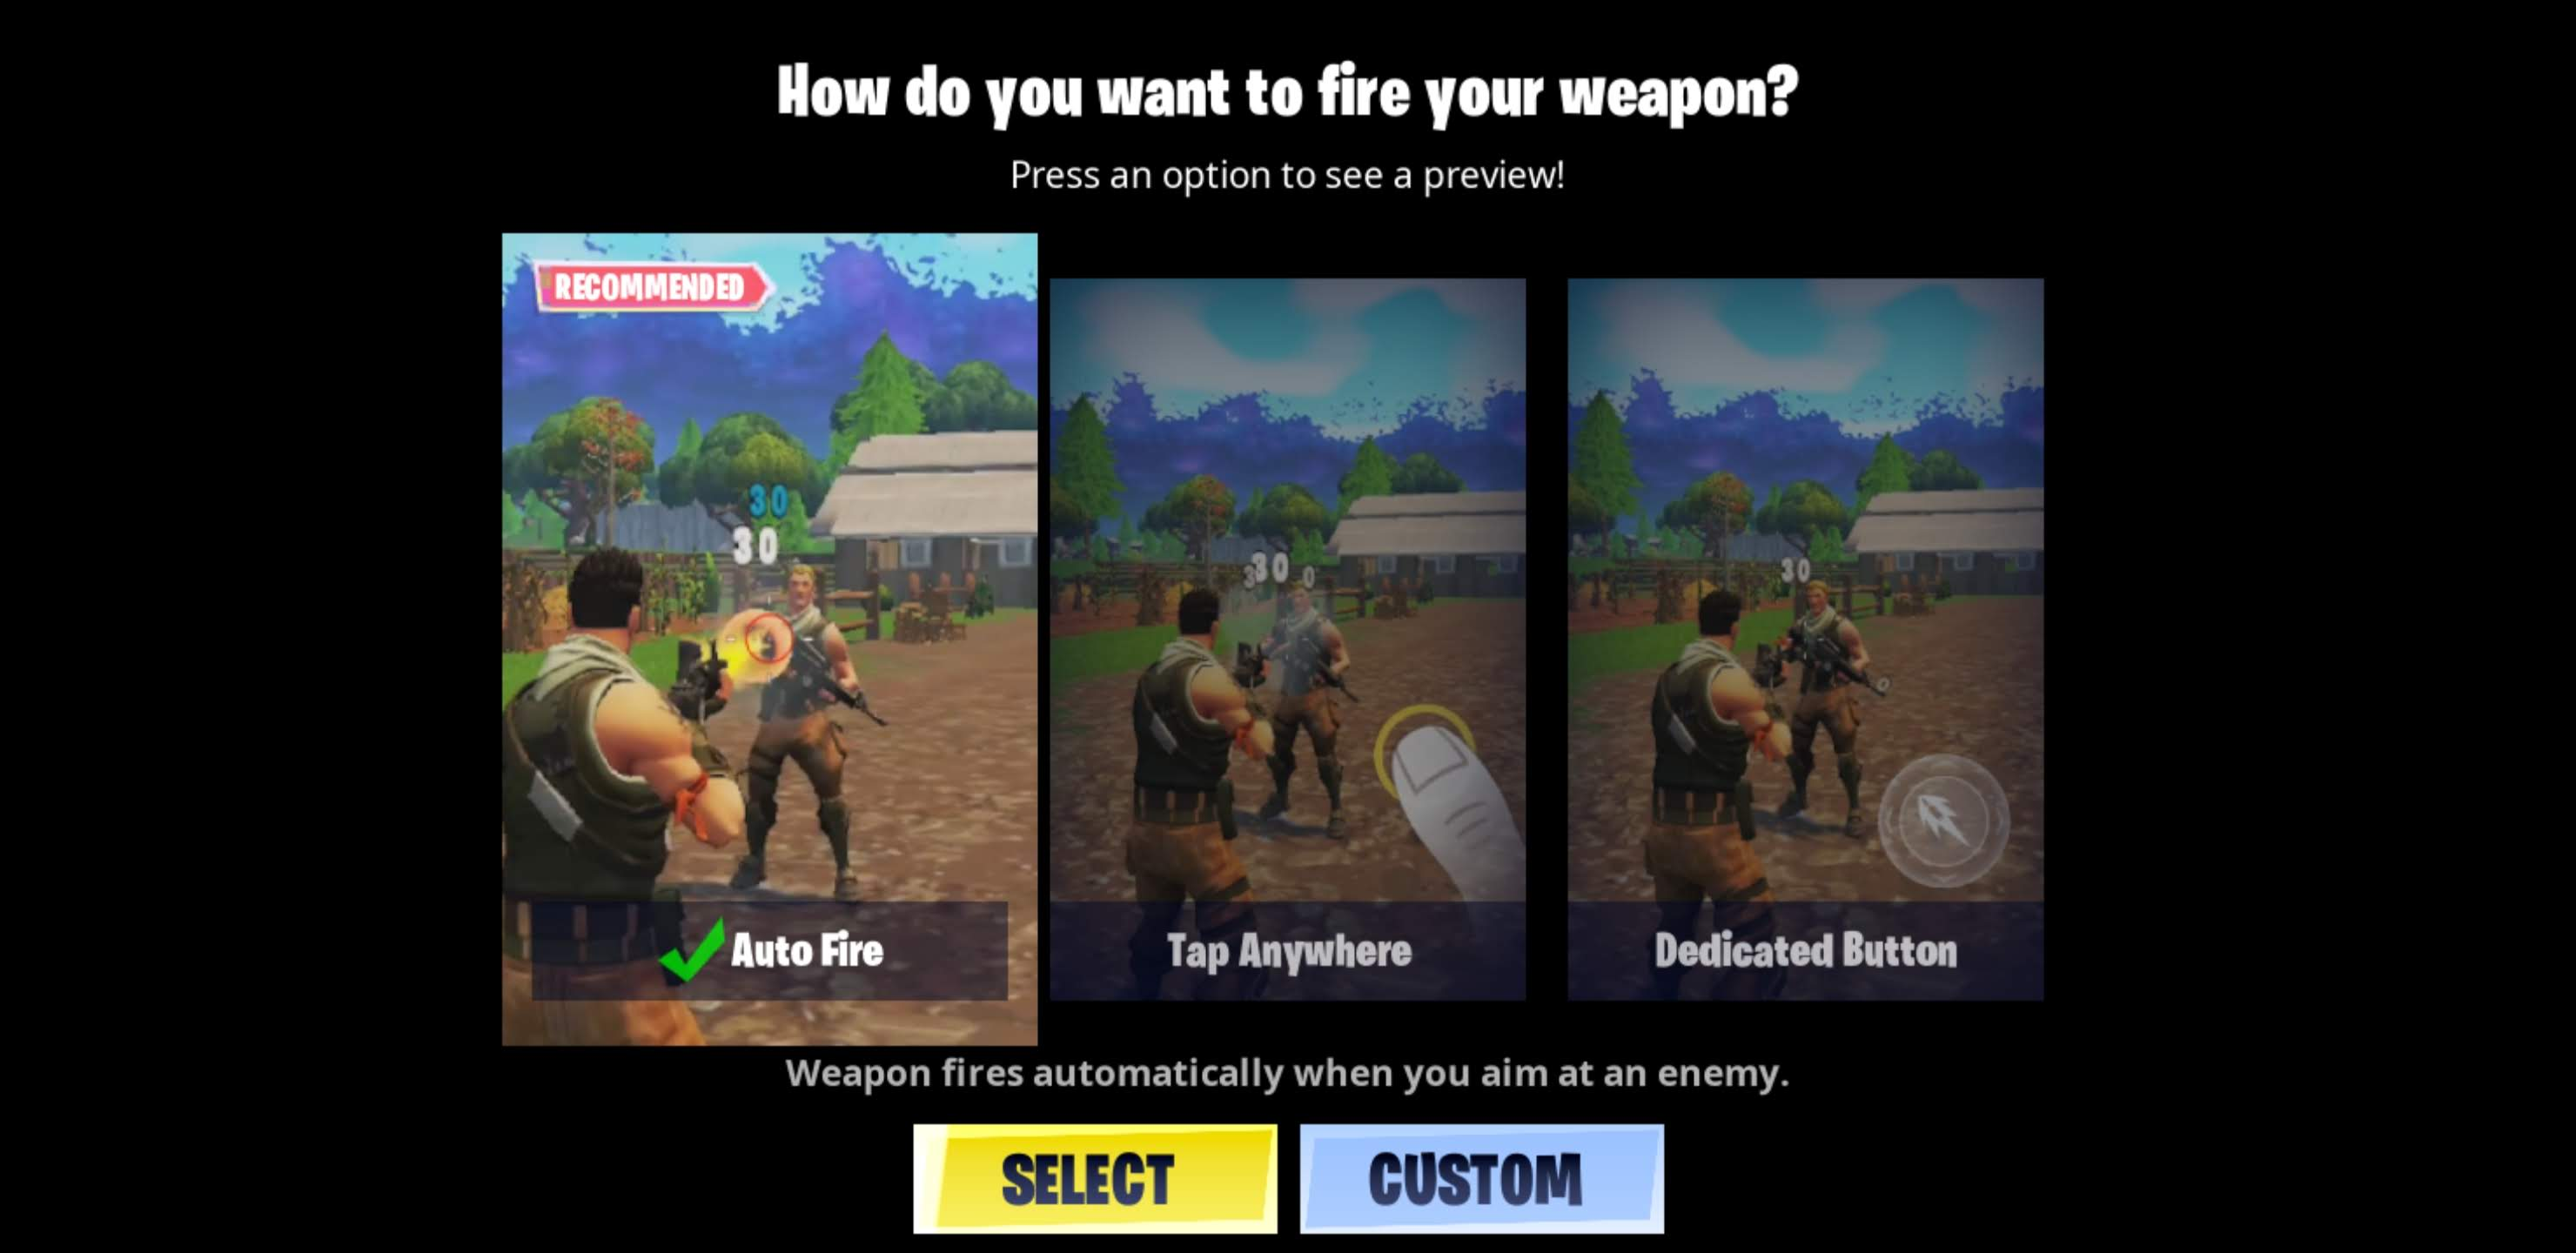 Fortnite Is Available On Most Samsung Galaxy Devices: Fortnite For Android Already Available For Galaxy S7 And